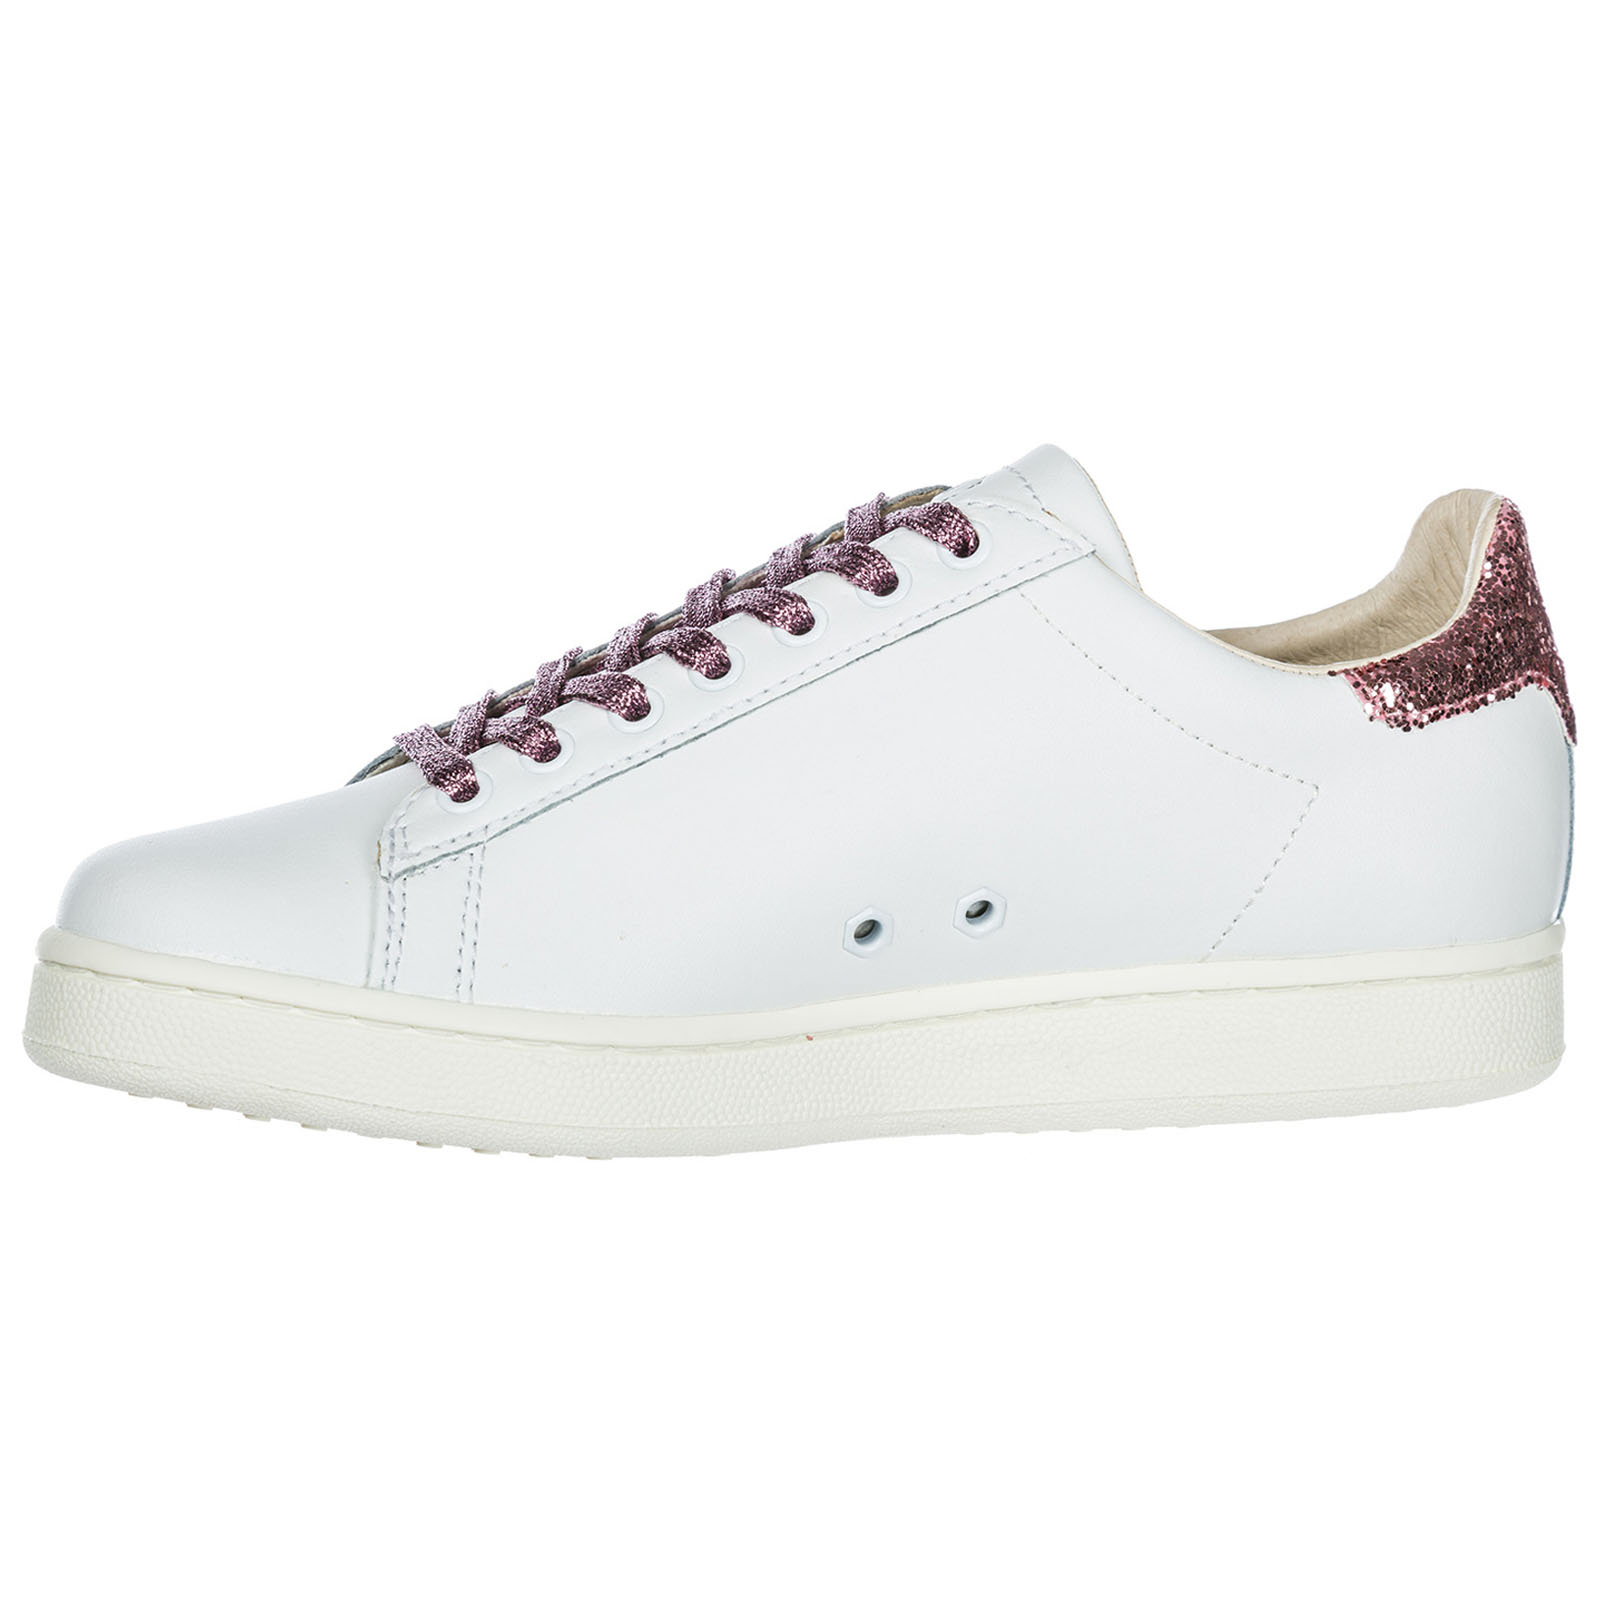 Women's shoes leather trainers sneakers flamingo